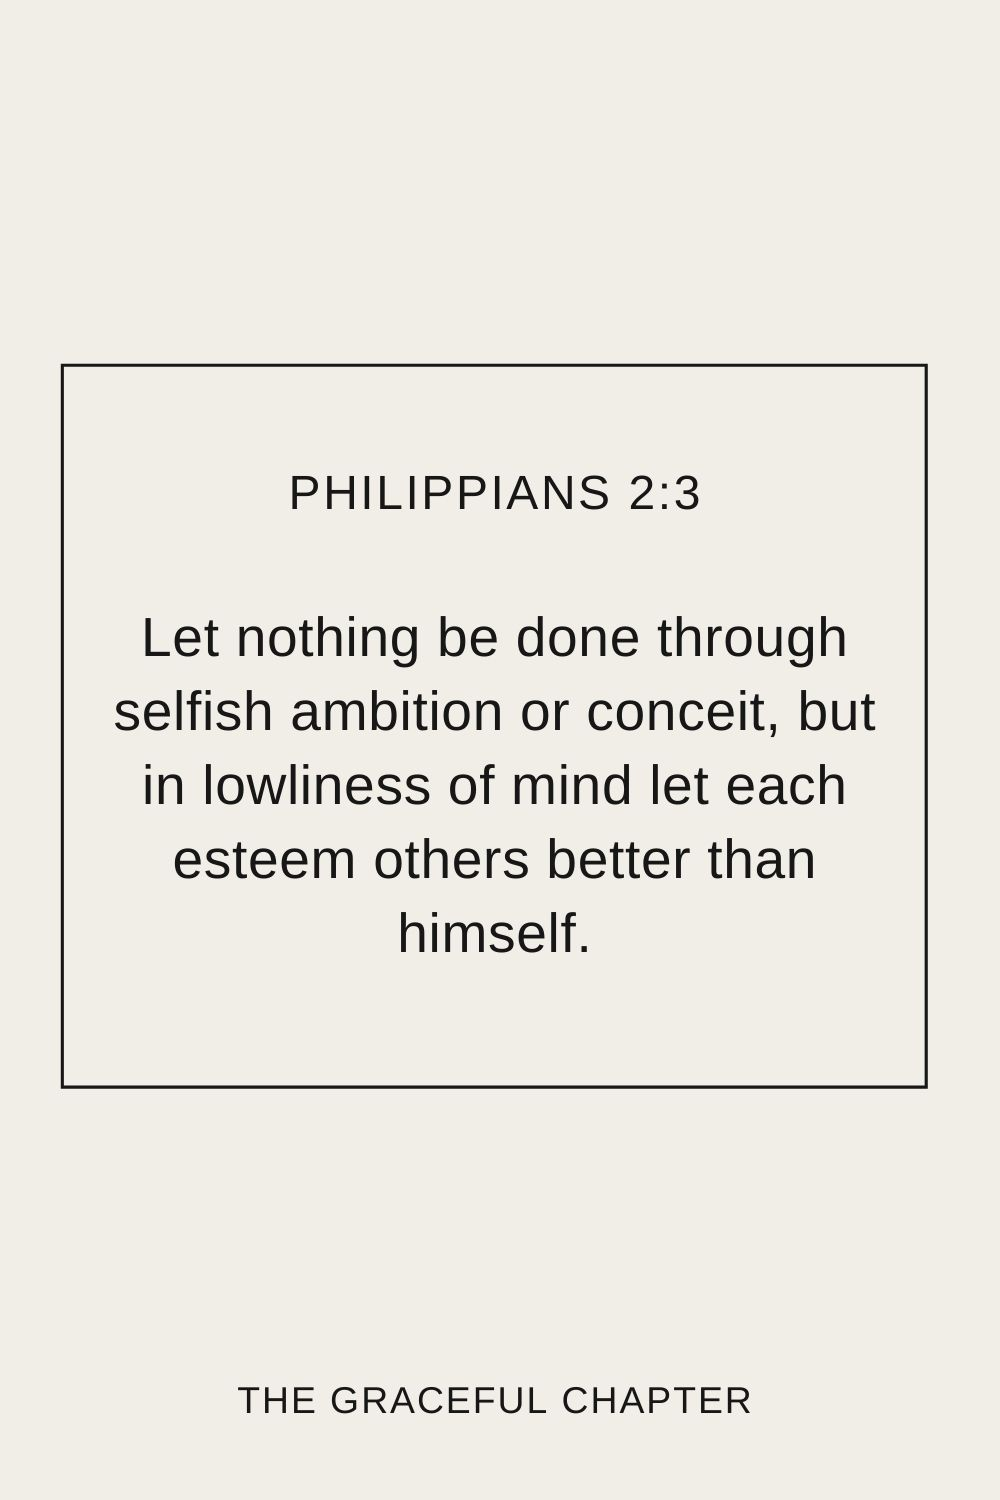 Let nothing be done through selfish ambition or conceit, but in lowliness of mind let each esteem others better than himself. Philippians 2:3